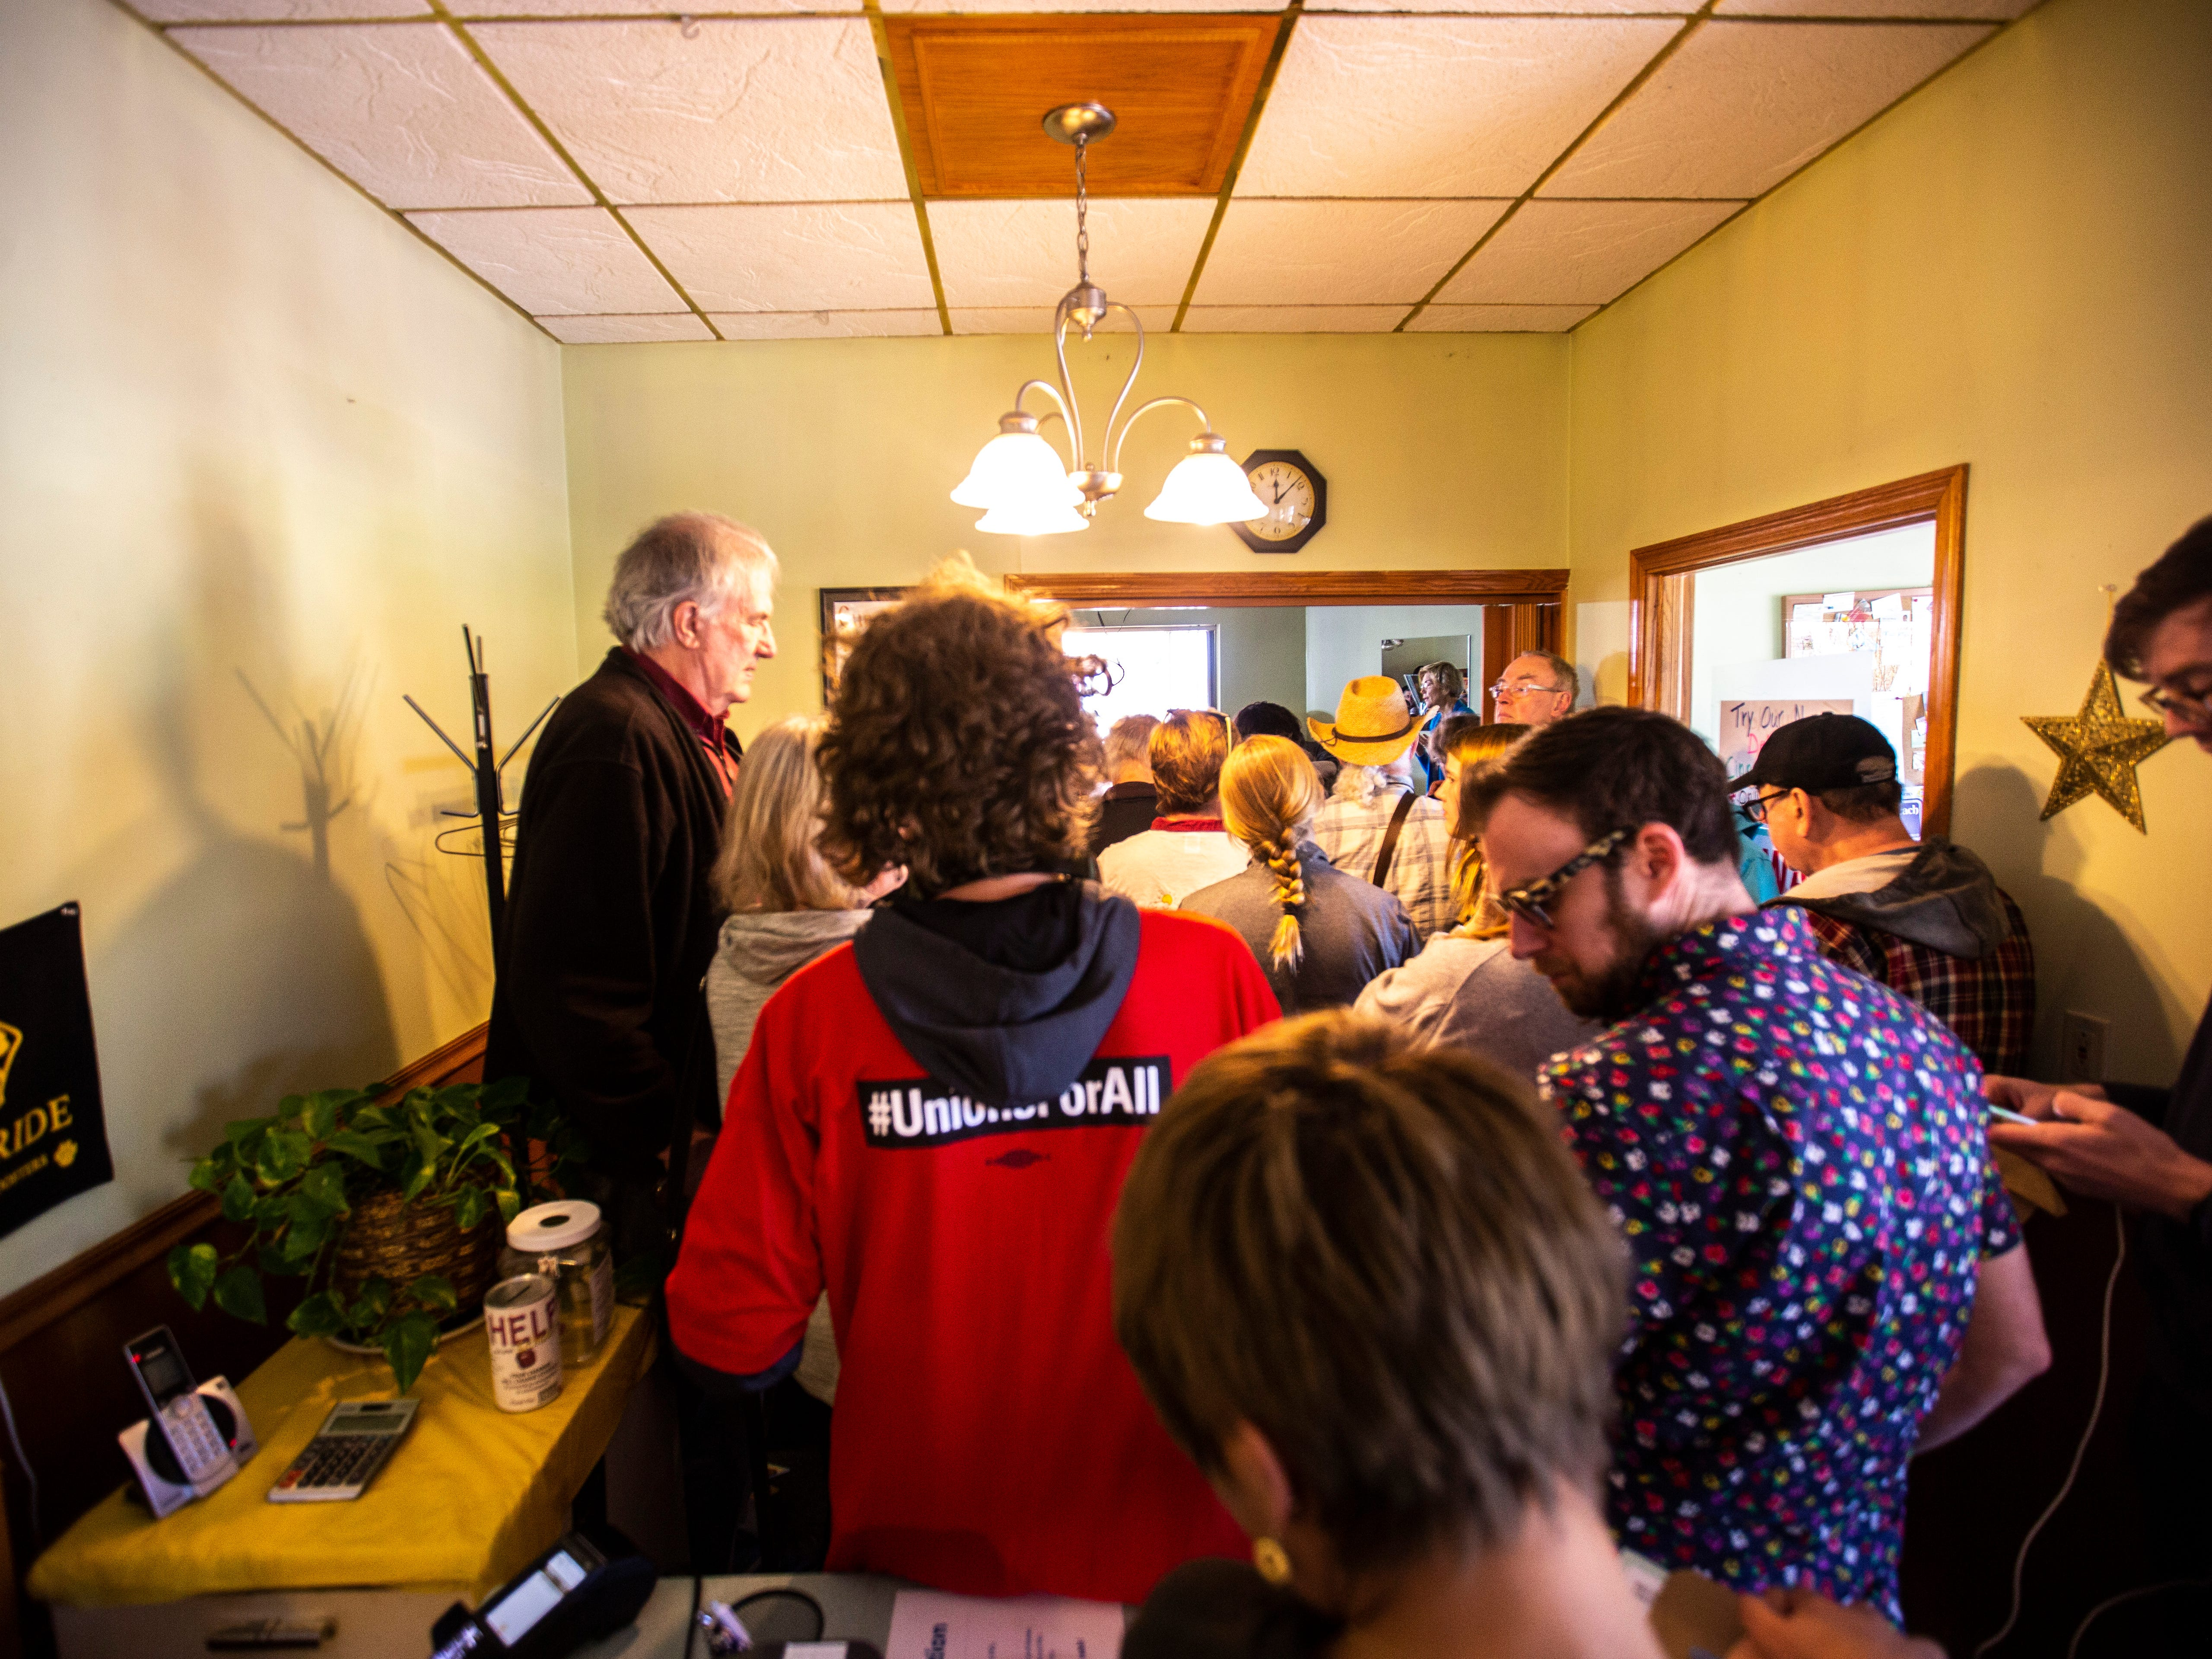 Supporters cram in the doorway while U.S. Sen. Elizabeth Warren, D-Mass., speaks during a campaign event, Friday, April 26, 2019, at the Tipton Family Restaurant in Tipton, Iowa.